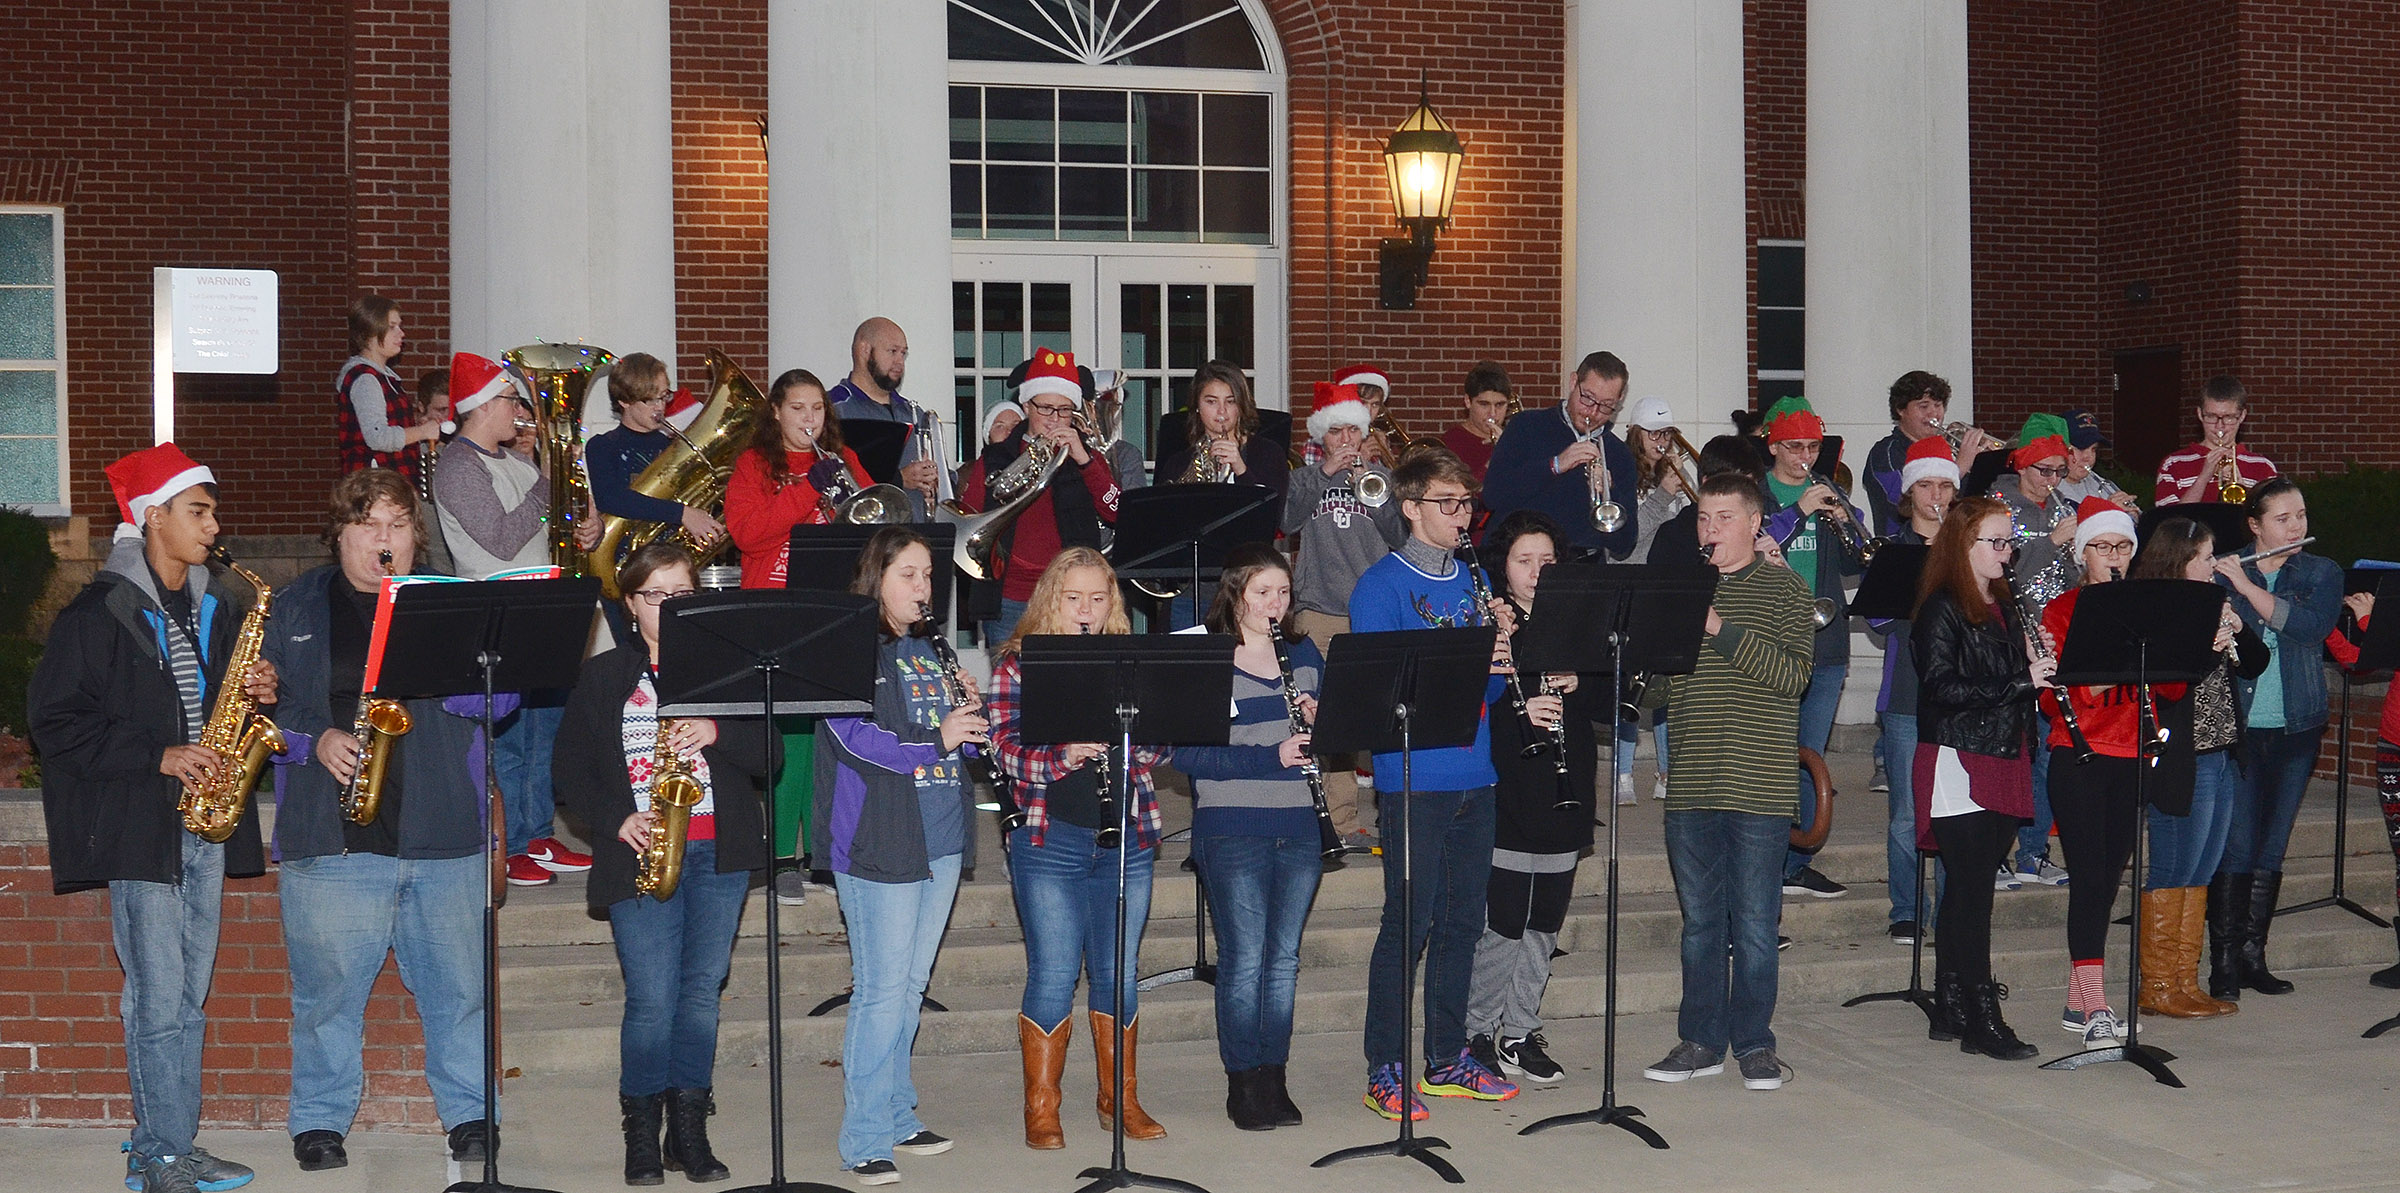 CHS band members combine with Taylor County band students to play Christmas music.